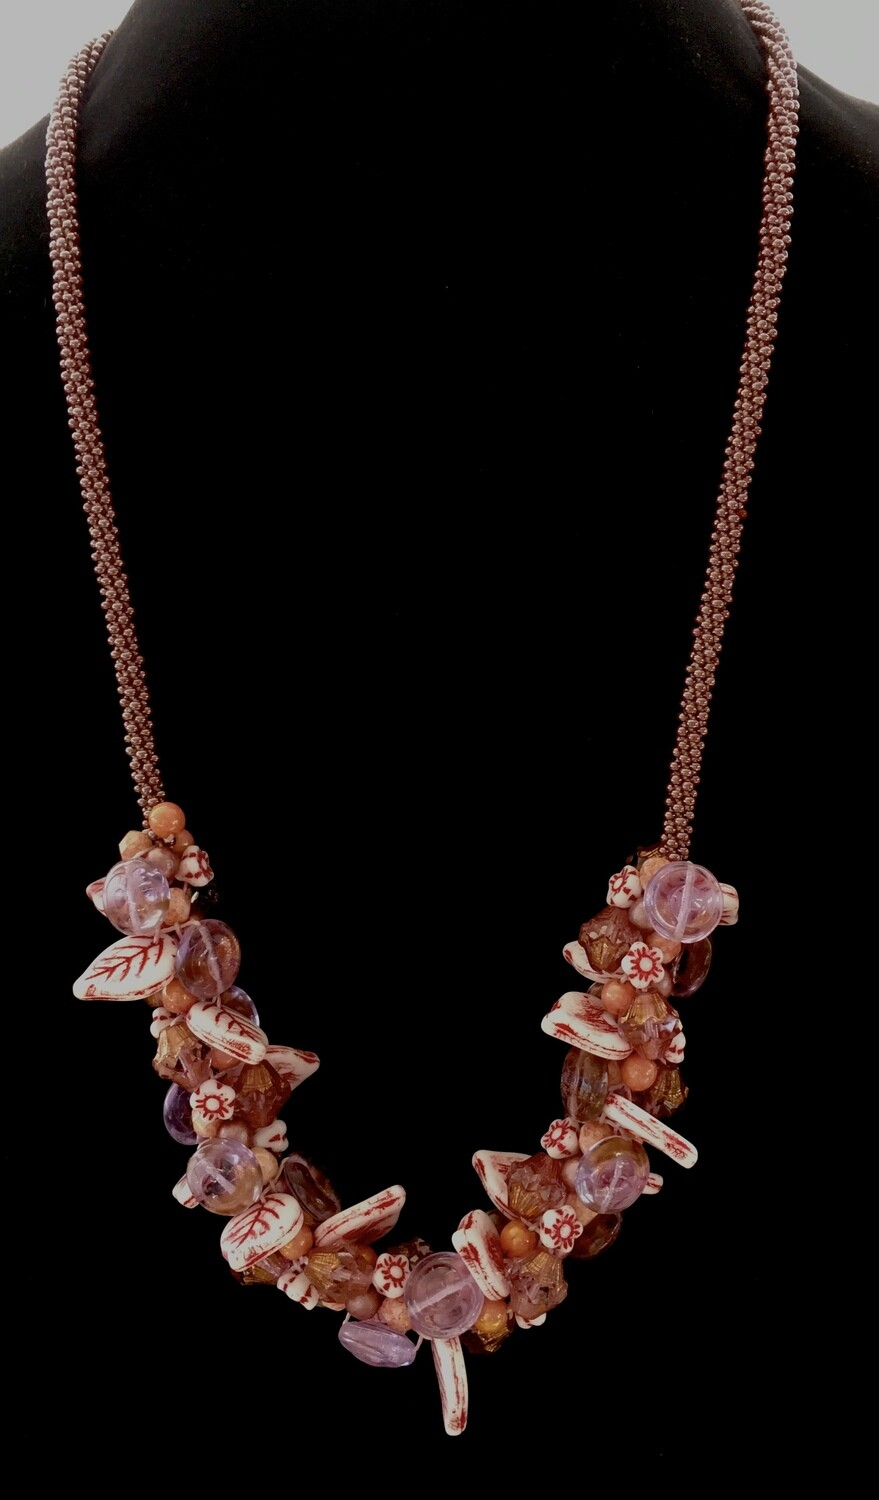 Long Kumihumo necklace with pink leaf and floral cluster beads